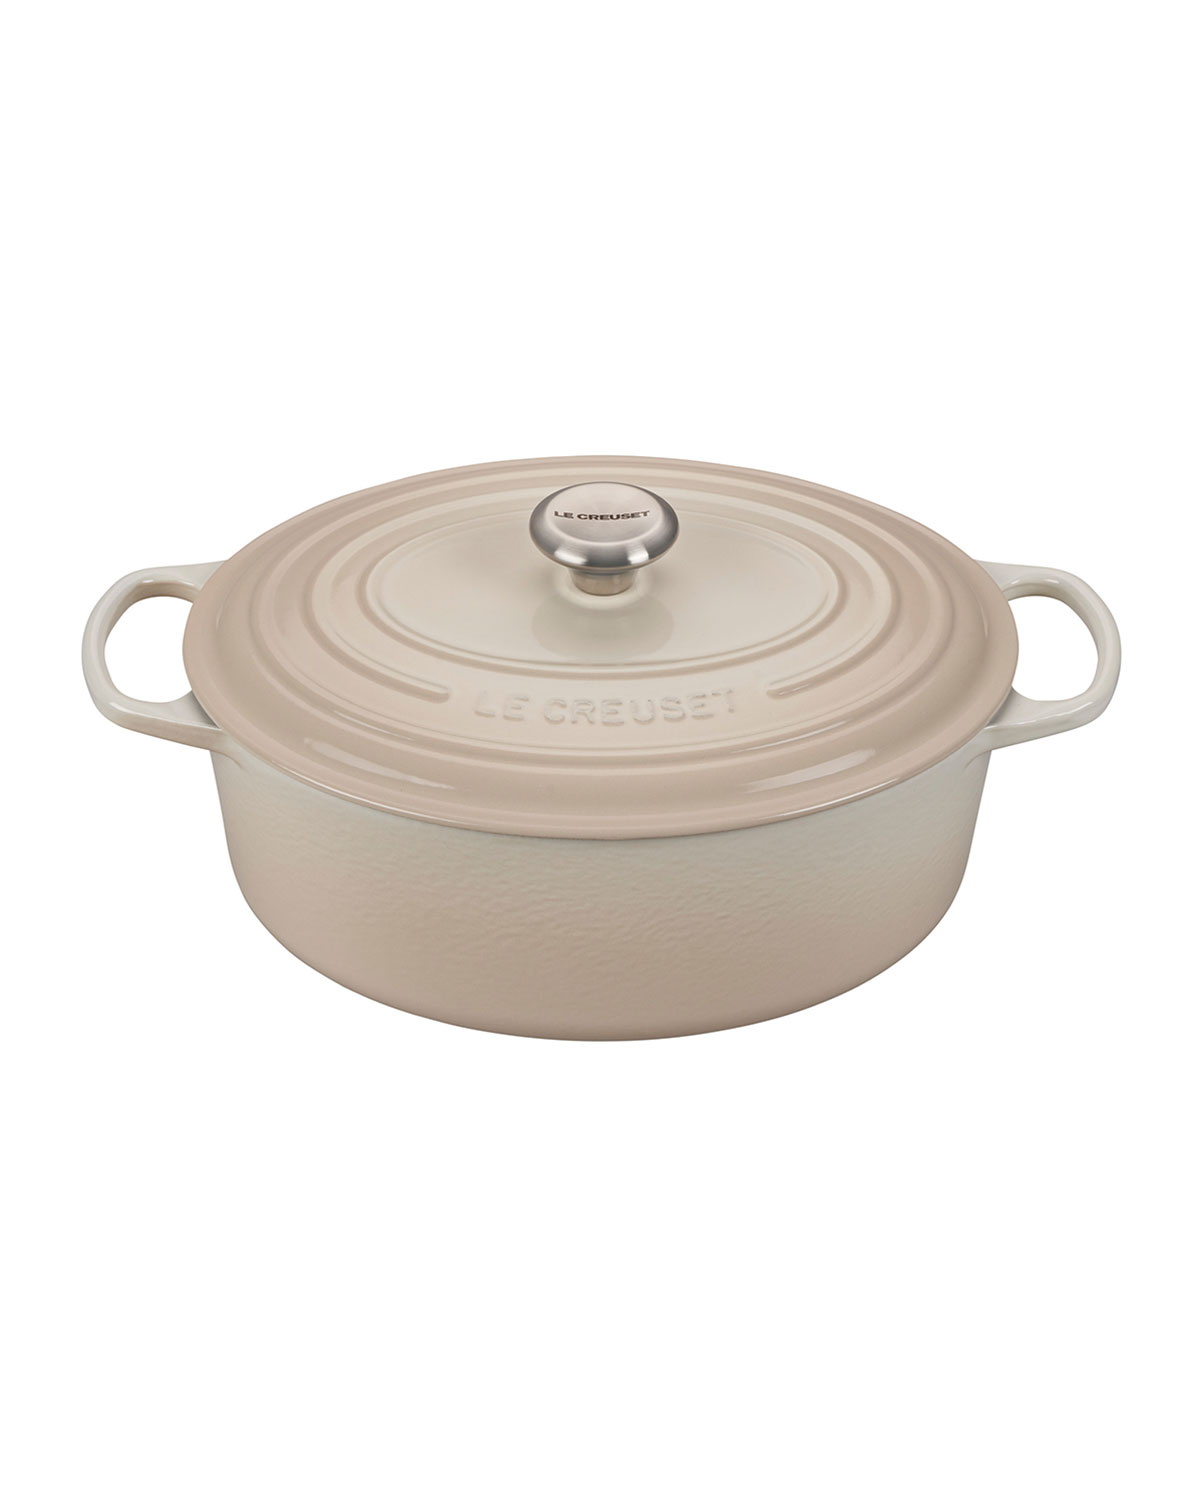 Le Creuset Lifetime Guarantee: Le Creuset Signature Oval 6.75-Quart Dutch Oven